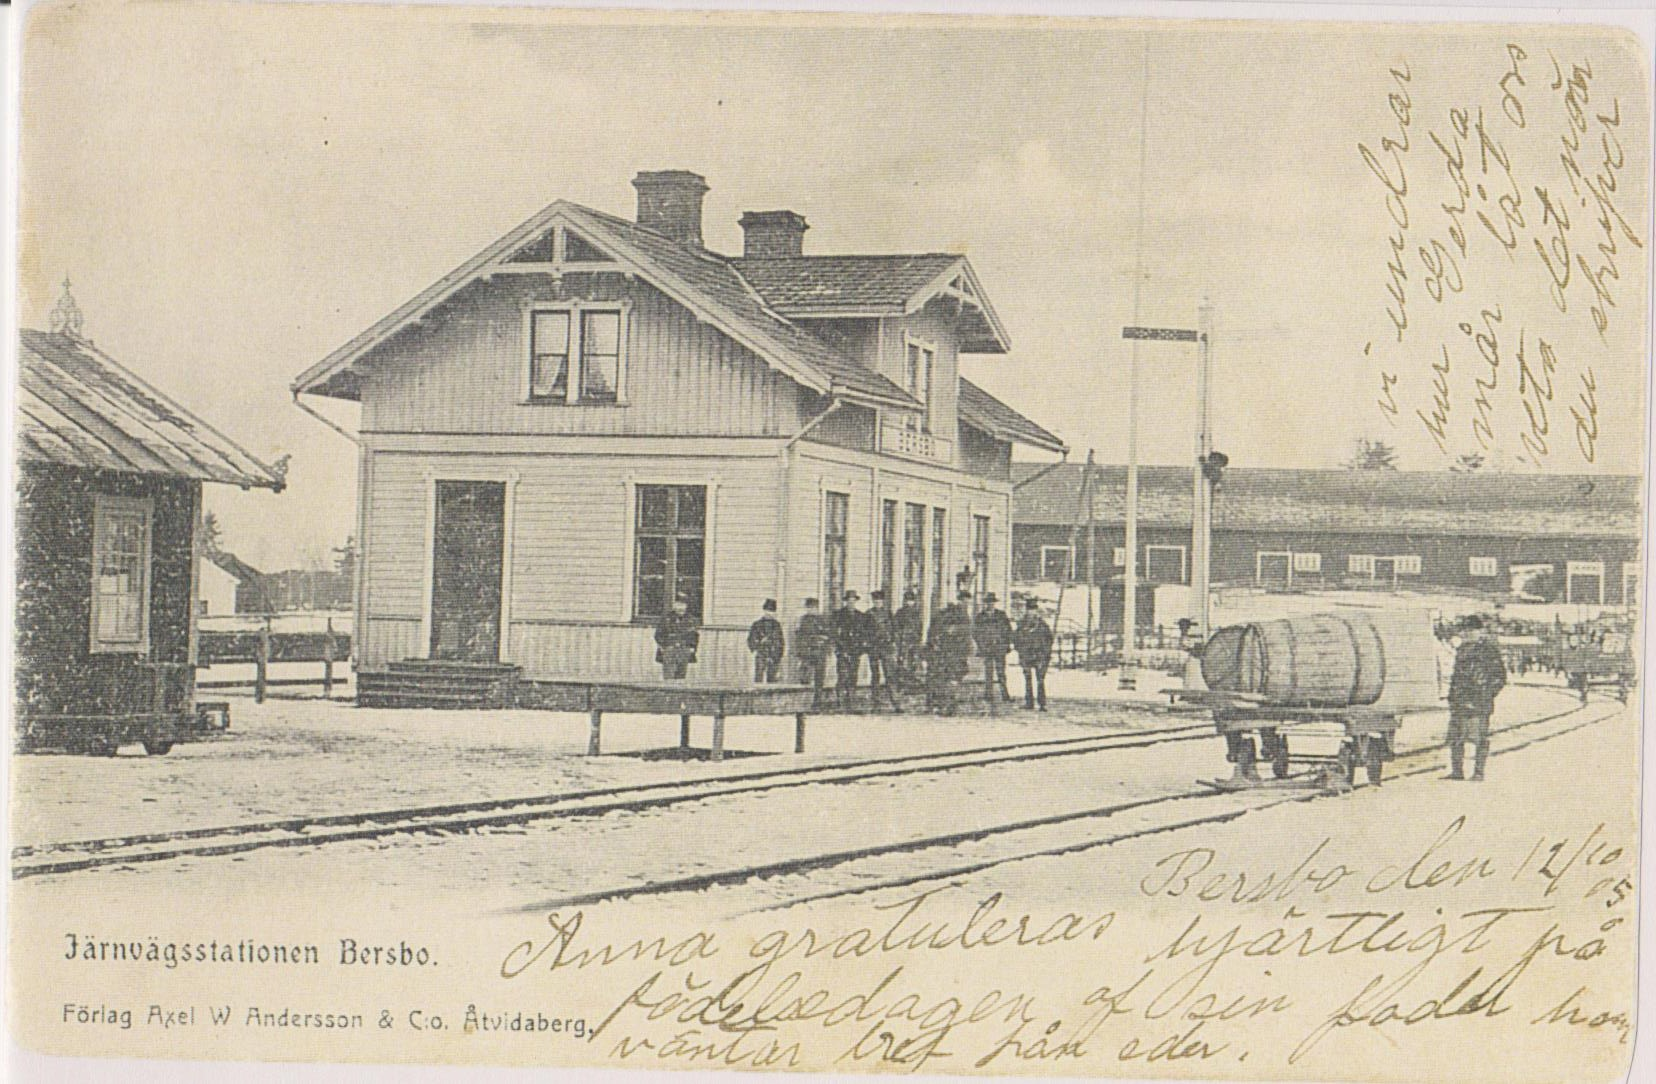 Trainstation-Bersbo-CG-Löfgrens-postcard-to-Anna